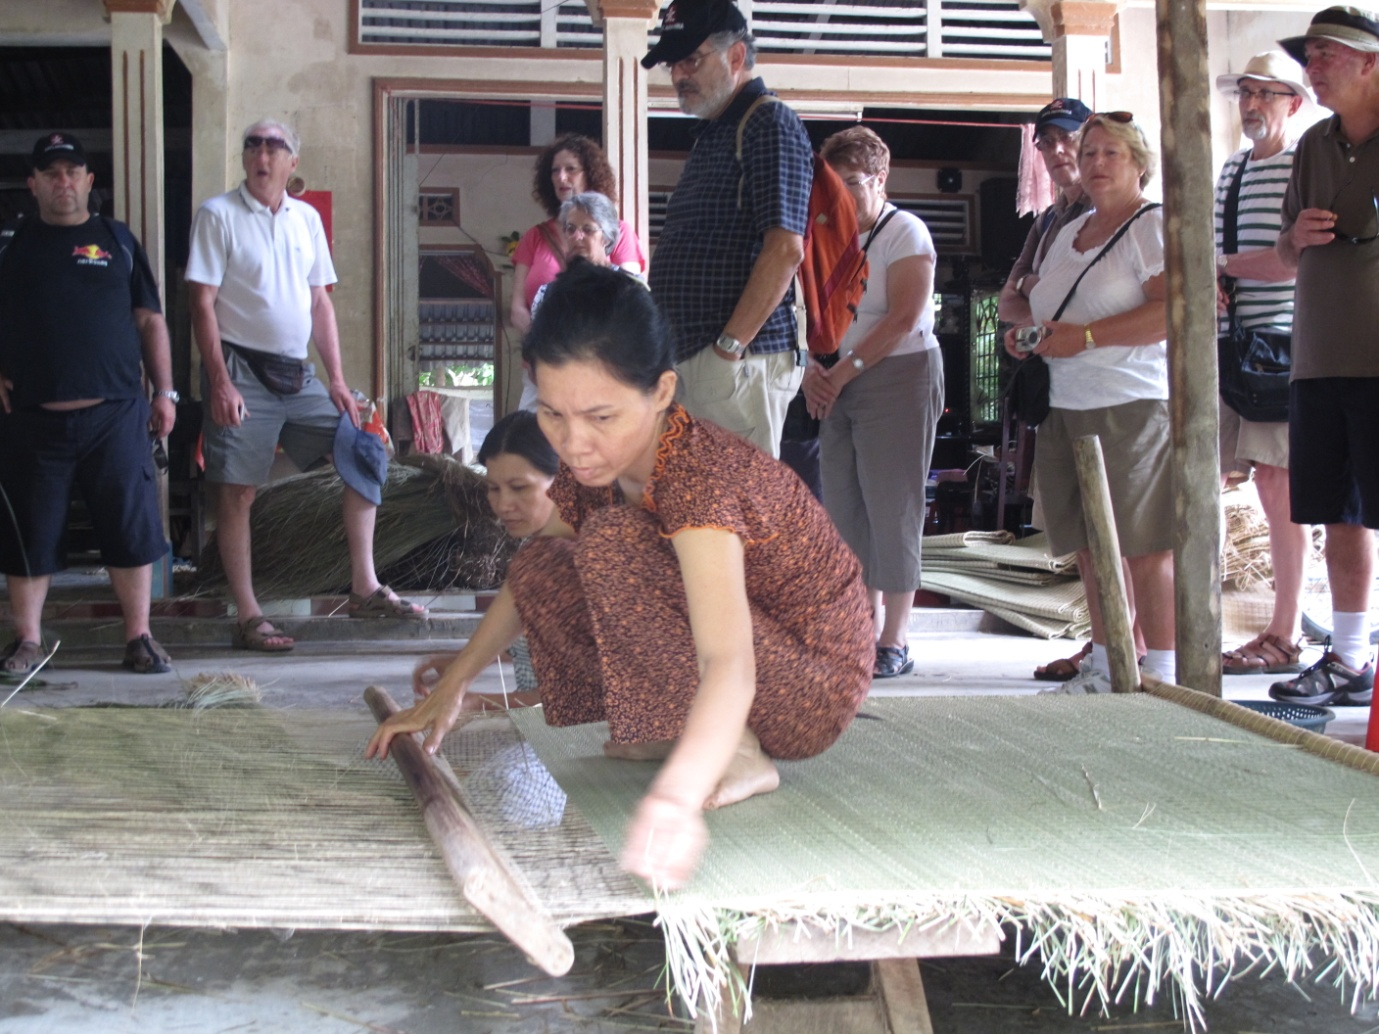 A chance to look at fine handicraft items made from coconut materials